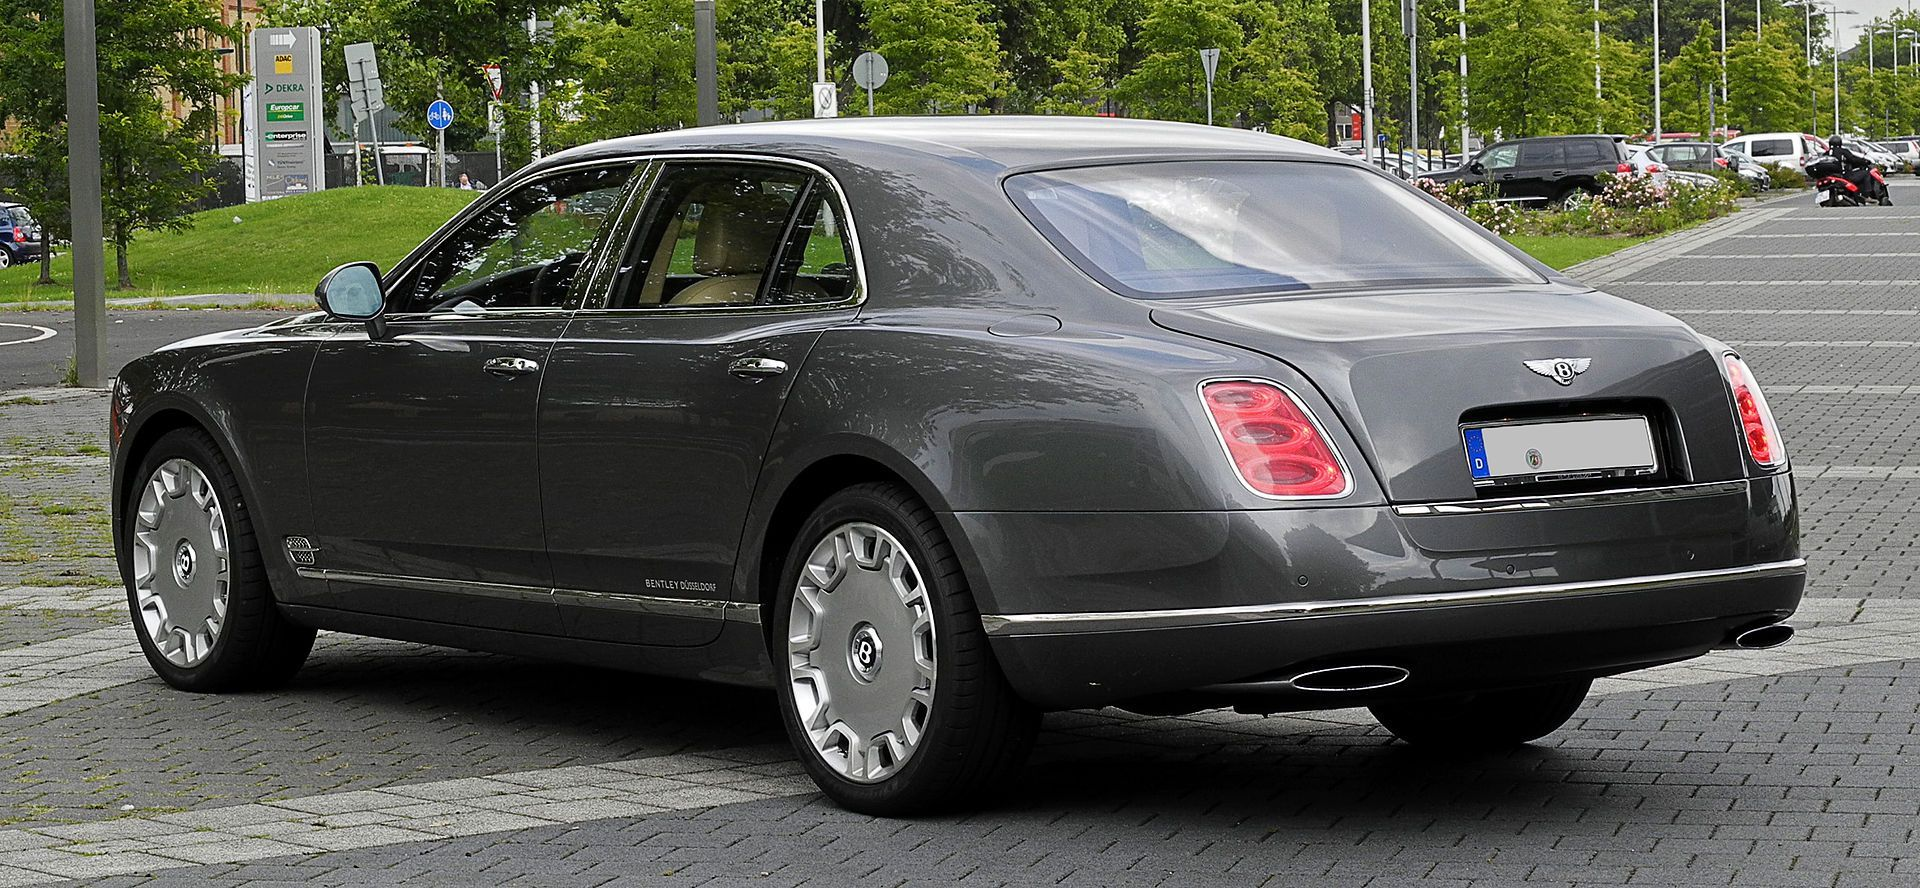 queen by grand autos bentley bbc mulliner the mulsanne price a fit for story limousine